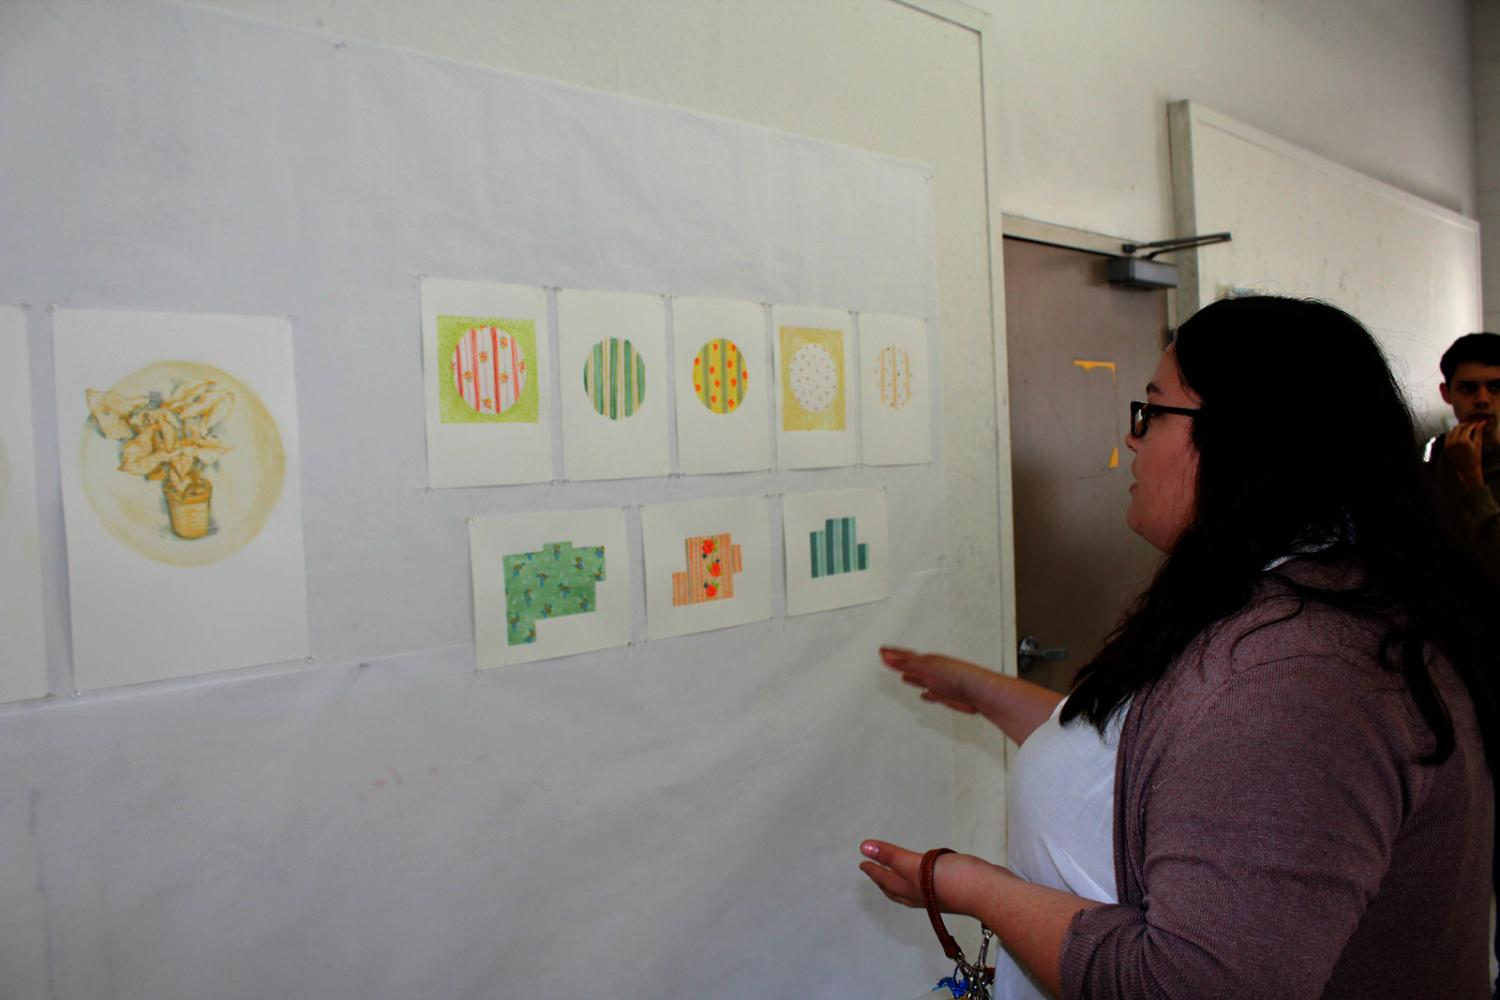 Artist Marie Fox talks about her prints, telling us she was trying to create the look of embroidery in all her art. She wanted the shapes to resemble floor plans in the bottom row. Photo credit: Abigail Jones